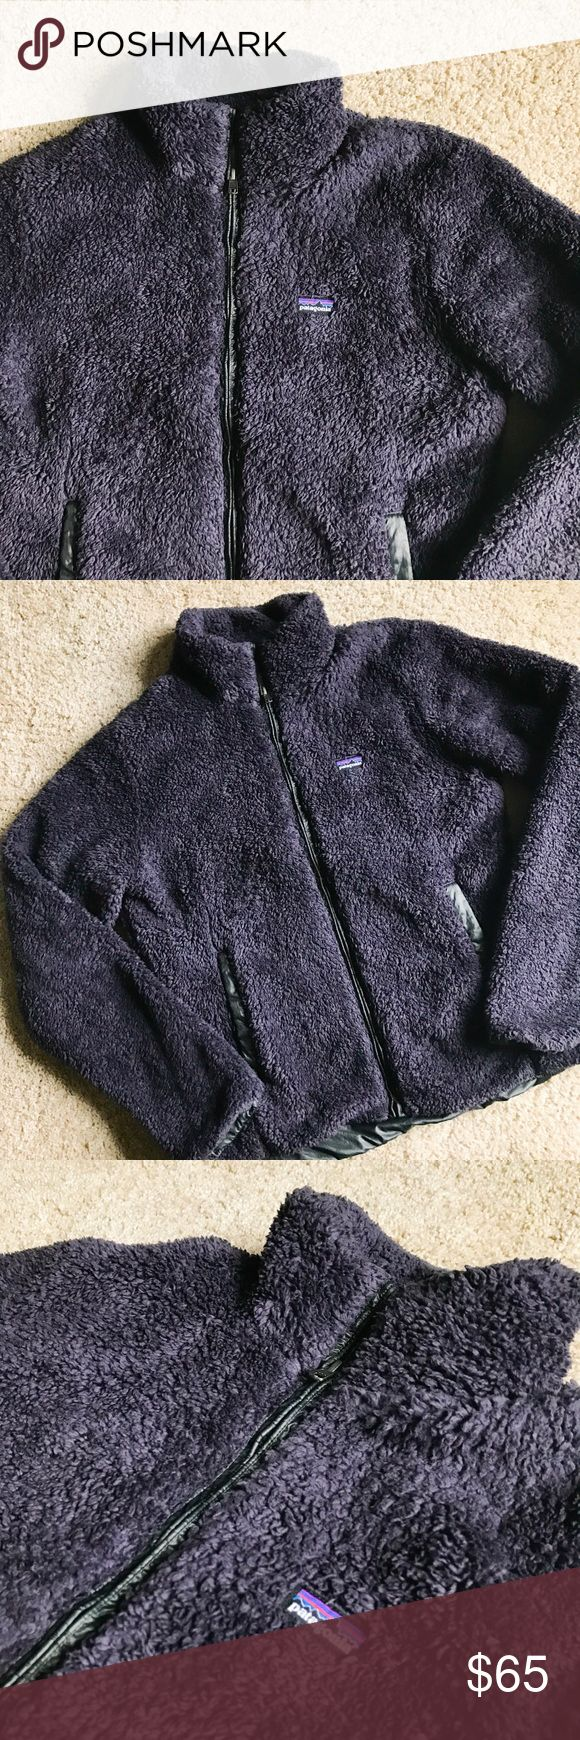 Patagonia Los Gatos Fleece Jacket Cute and cozy fleece jacket from Patagonia. Deep purple color. Size L. Excellent, pre-loved condition. No flaws to note. ------------ Made of deep-pile polyester fleece, trimmed out in sleek taffeta Full-length front zipper and a stand-up collar Long, lean jacket silhouette, with tonal polyester trim at front zip and pockets Princess seams in back for a contoured fit Hip length Patagonia Jackets & Coats